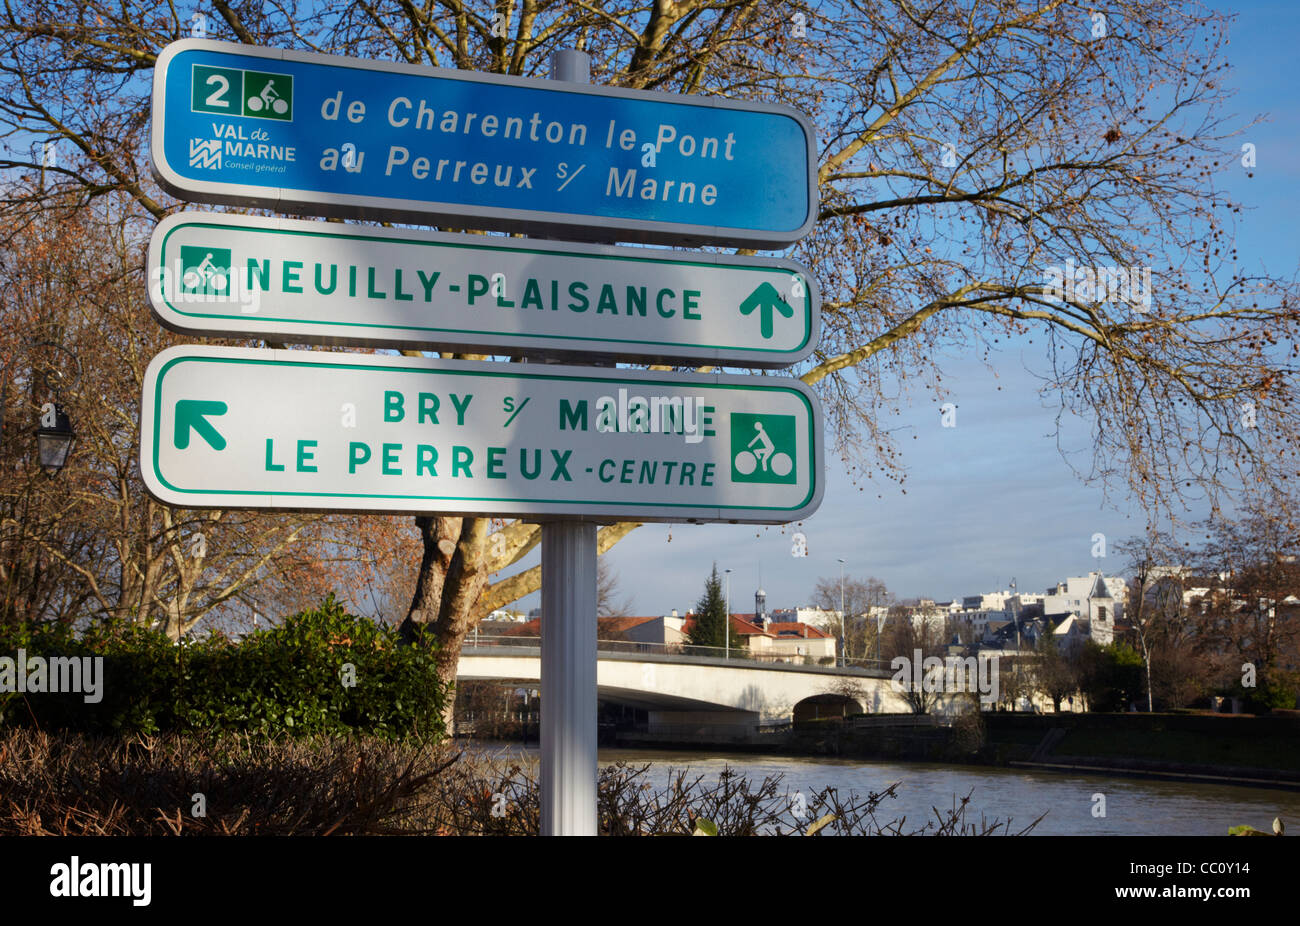 Signs for cycle routes by the River Marne. Le Perreux-sur-Marne, Val-de-Marne, France. - Stock Image